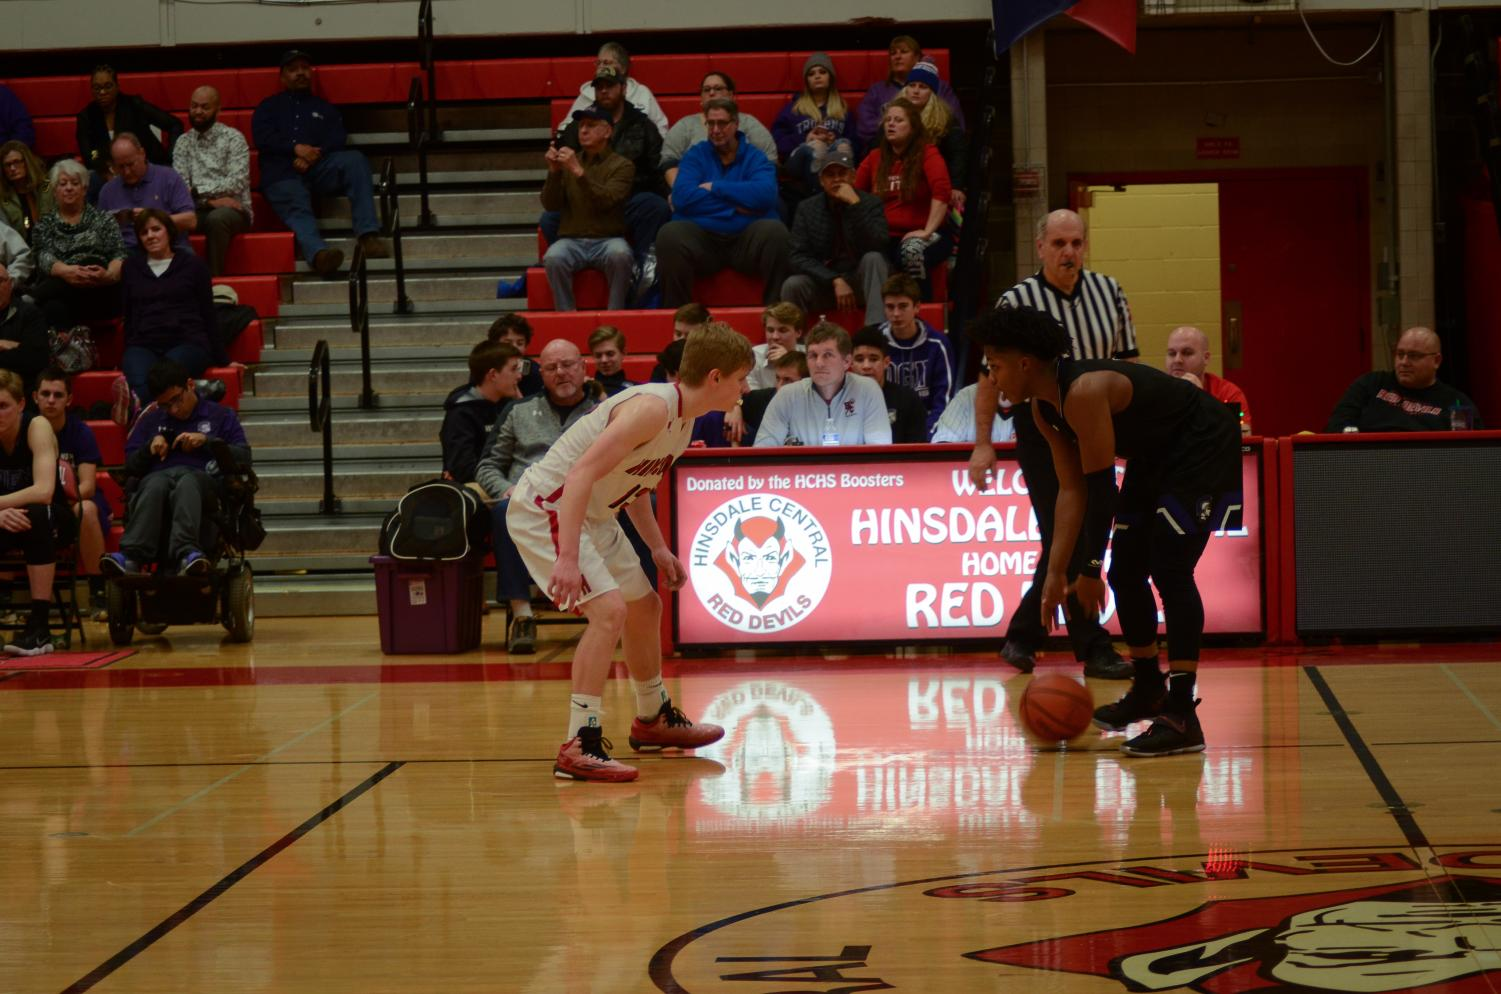 On Friday, Feb. 16, the boys varsity basketball team played against Downers Grove North. It was also Senior Night, a night where senior basketball players, pommers, and cheerleaders are honored because it was the last home game.